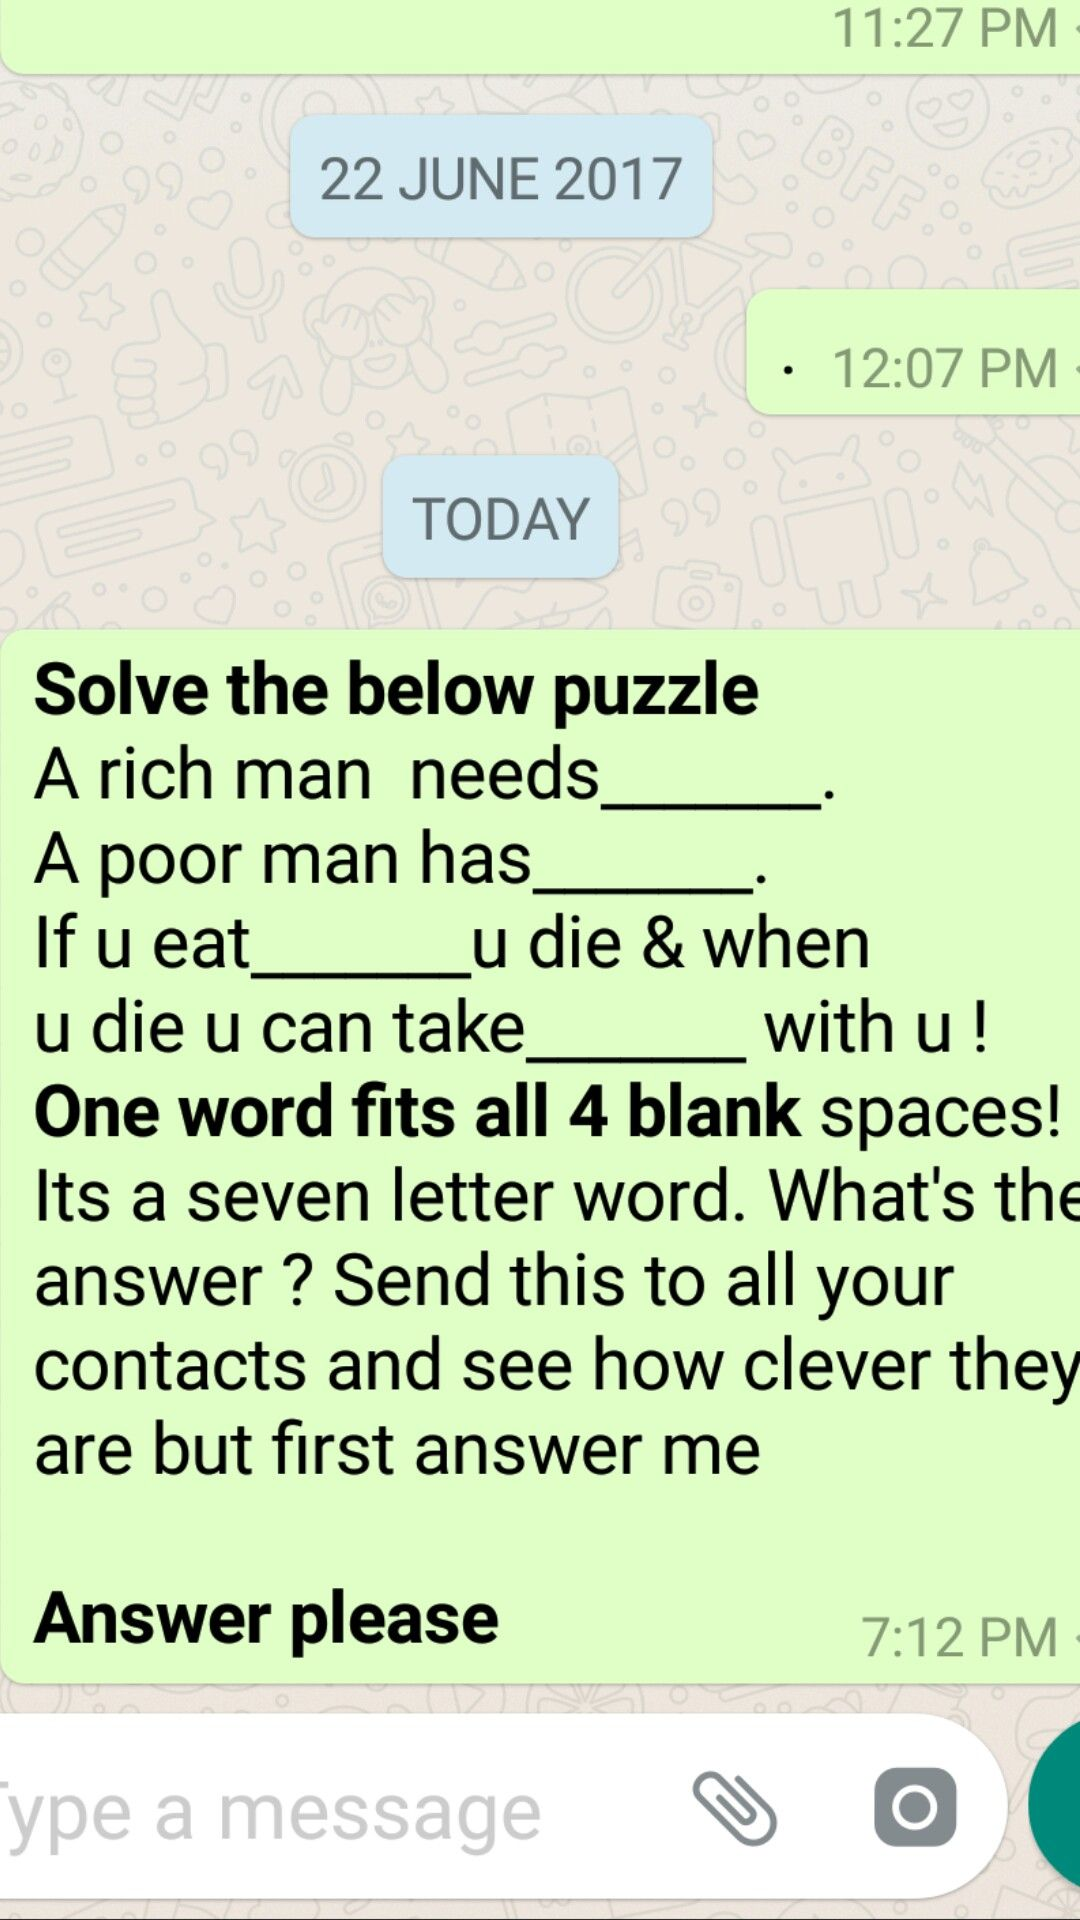 Pin By Sureshkumar Khanna On Puzzles Teasers And Optical